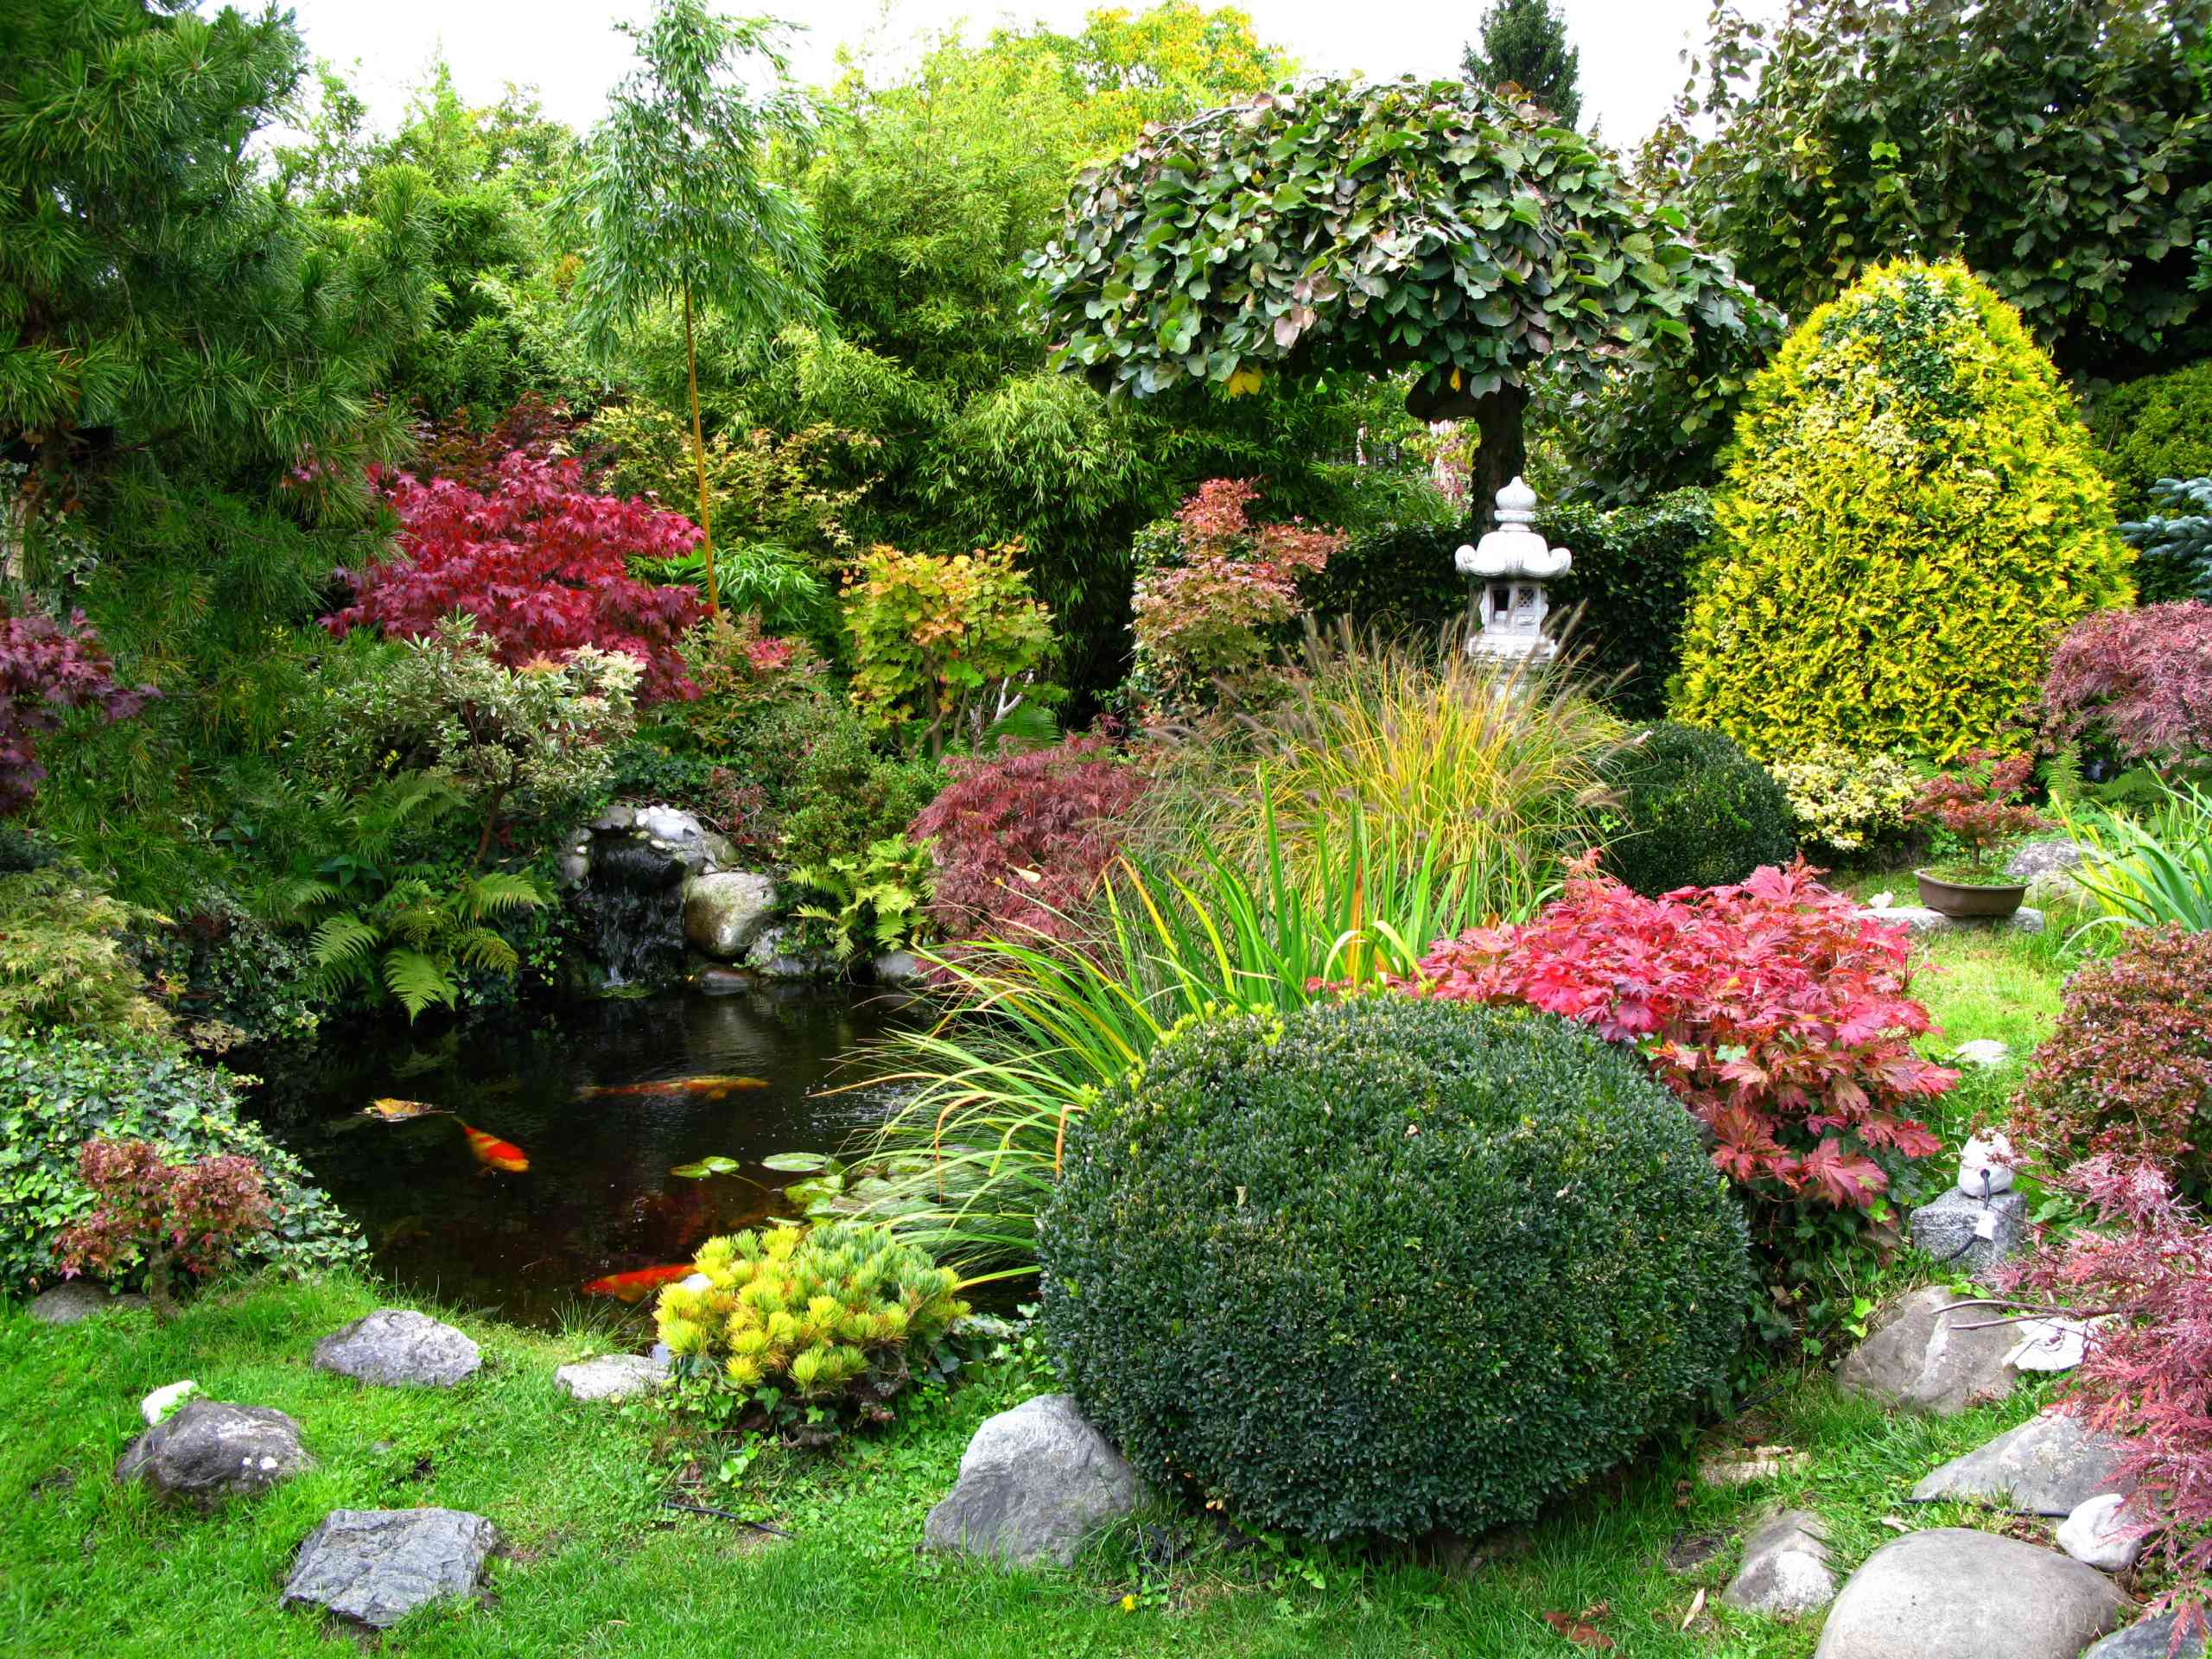 Koi pond with various plants, rocks and sculptures.